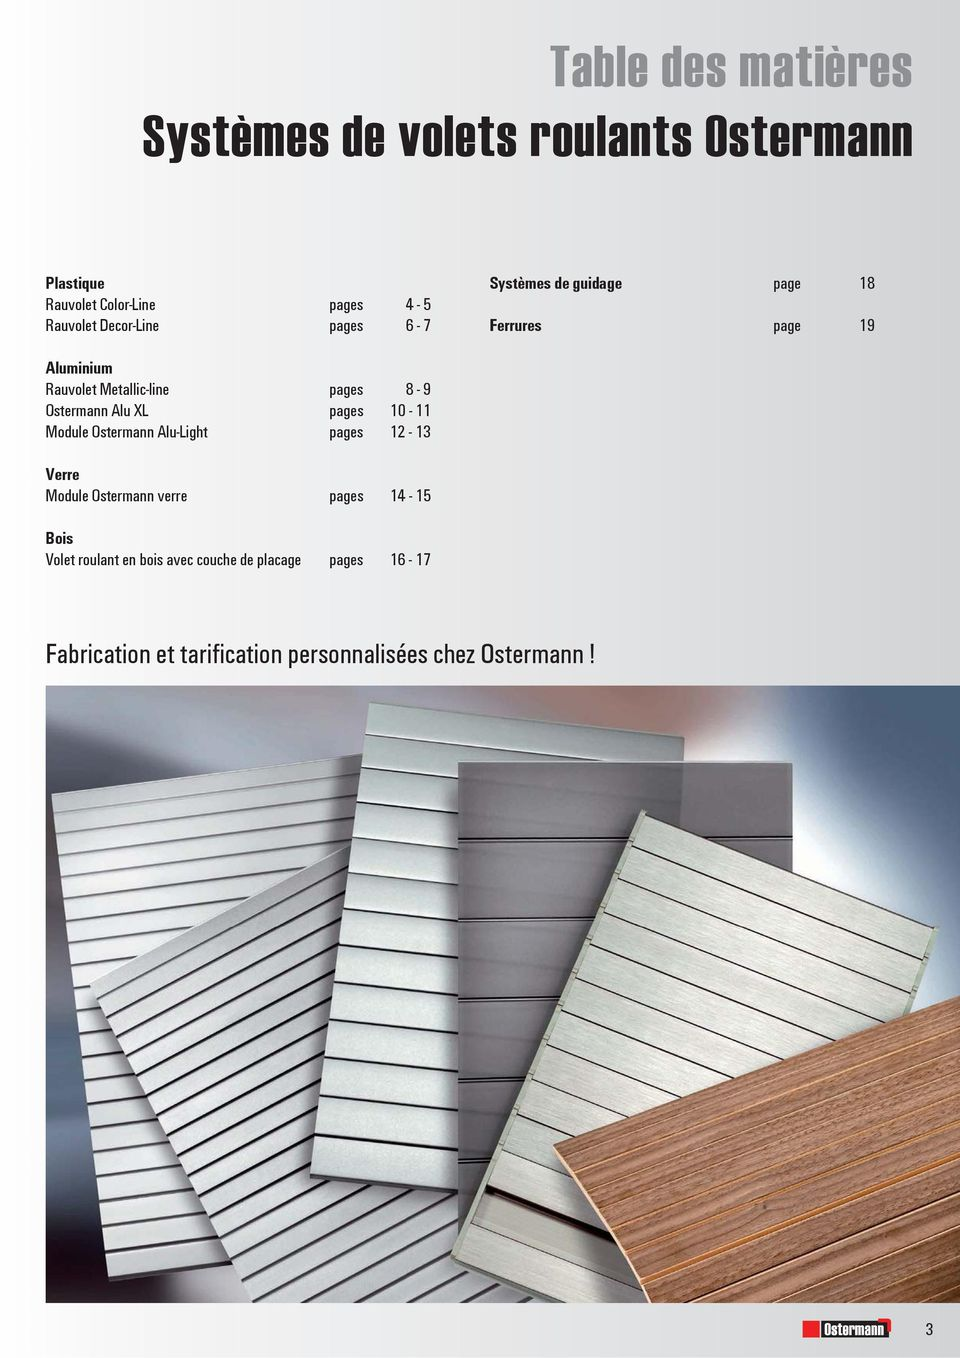 Metallic-line pages 8-9 Ostermann Alu XL pages 10-11 Module Ostermann Alu-Light pages 12-13